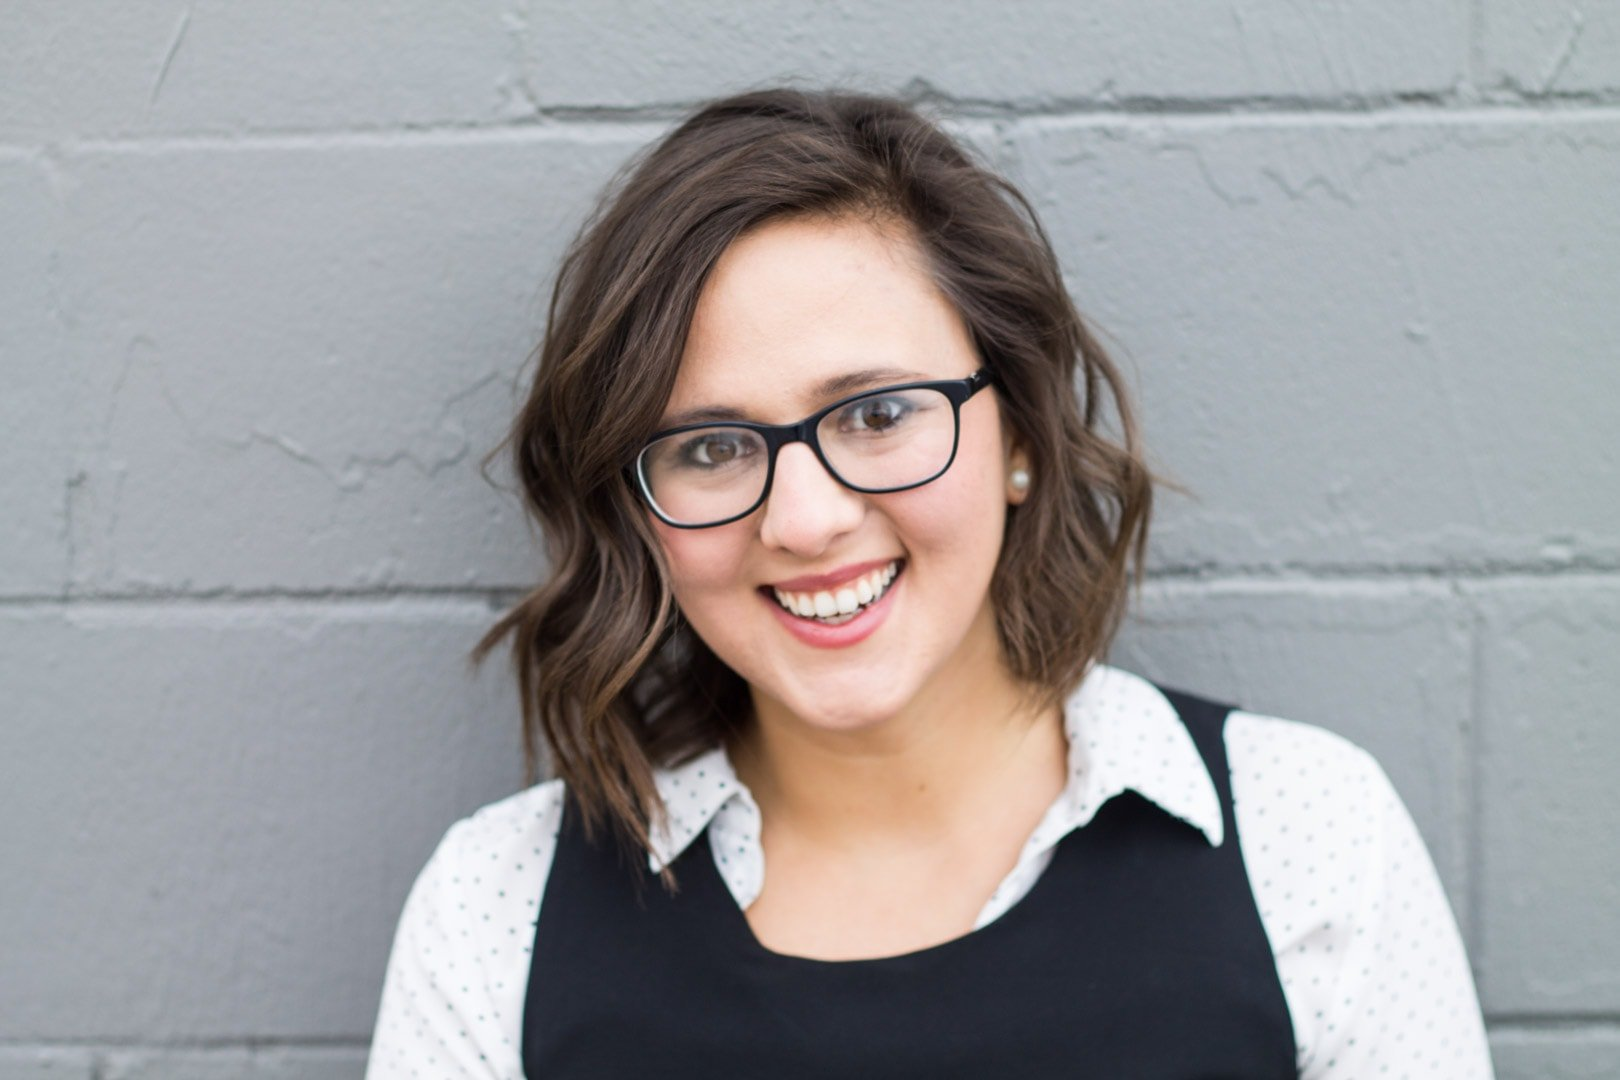 Hey, I'm Em! (Em Schwartz RDN) This is a picture of my smiling. I have wavy dark brown shoulder-length hair and wear black thick-framed glasses.